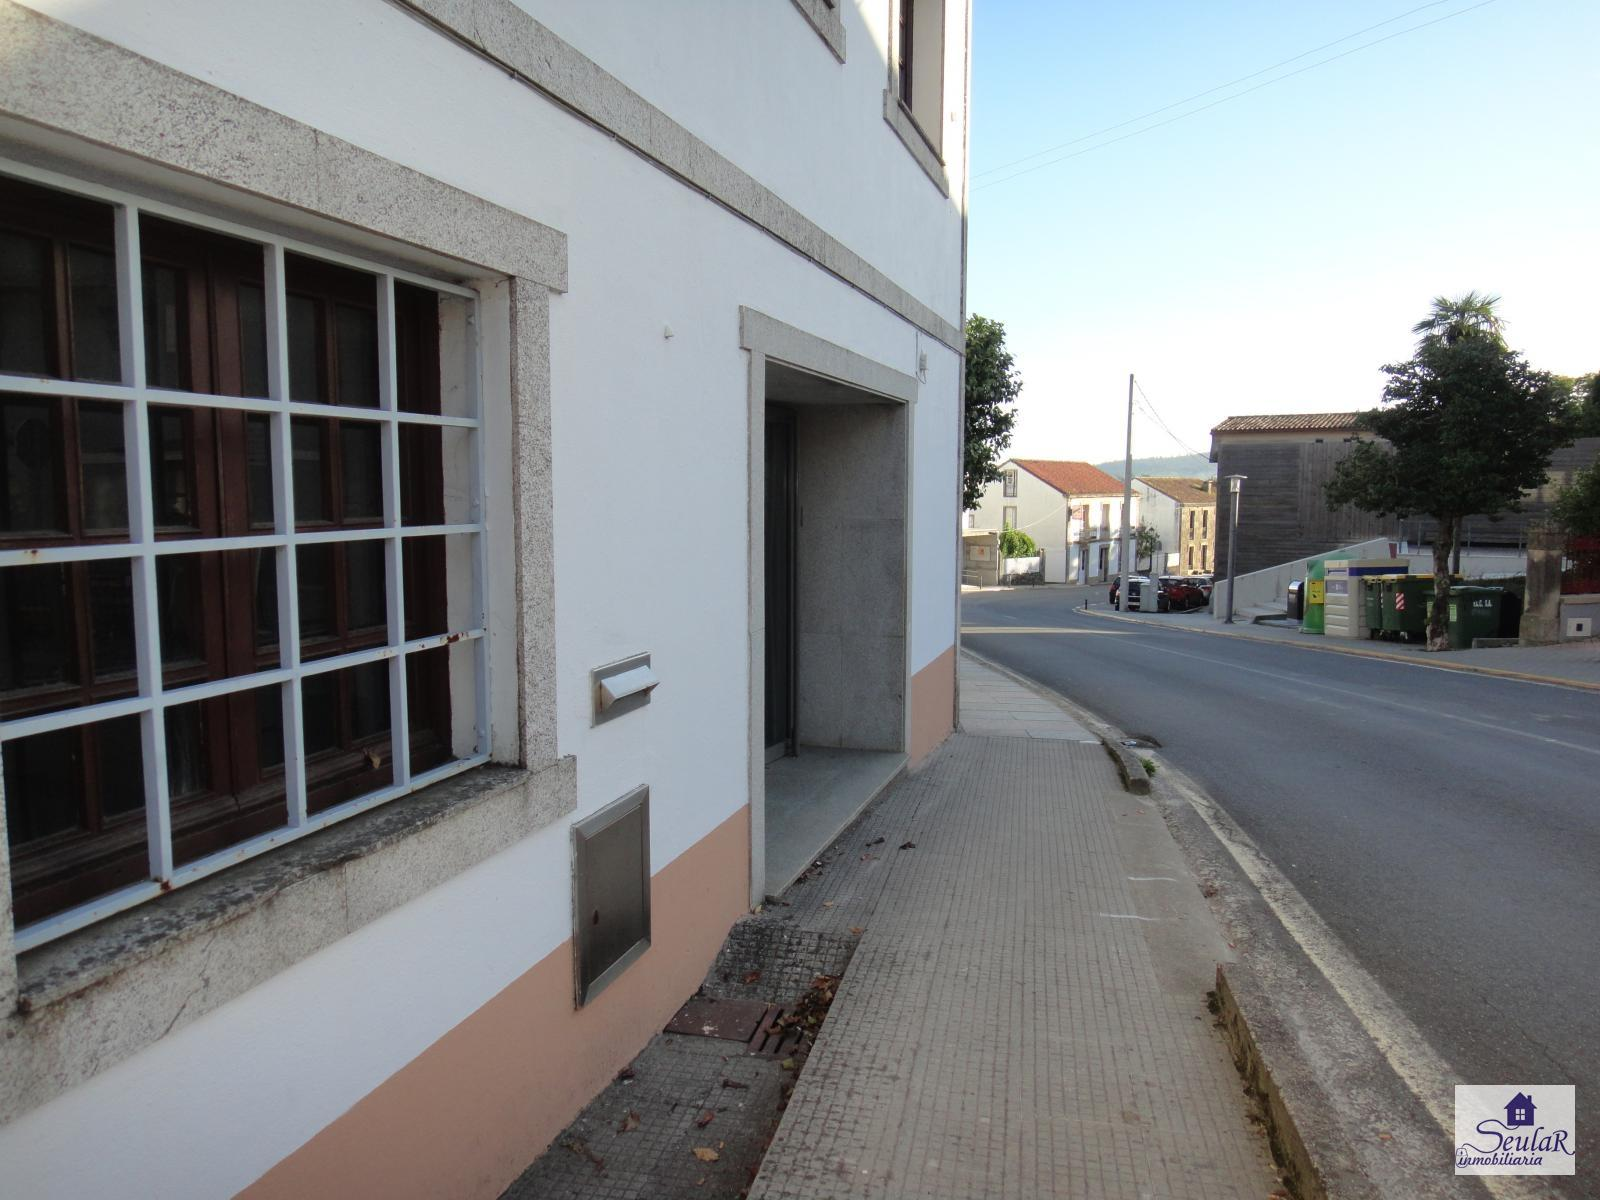 Commercial Premises for rent in Brión, 350 €/month